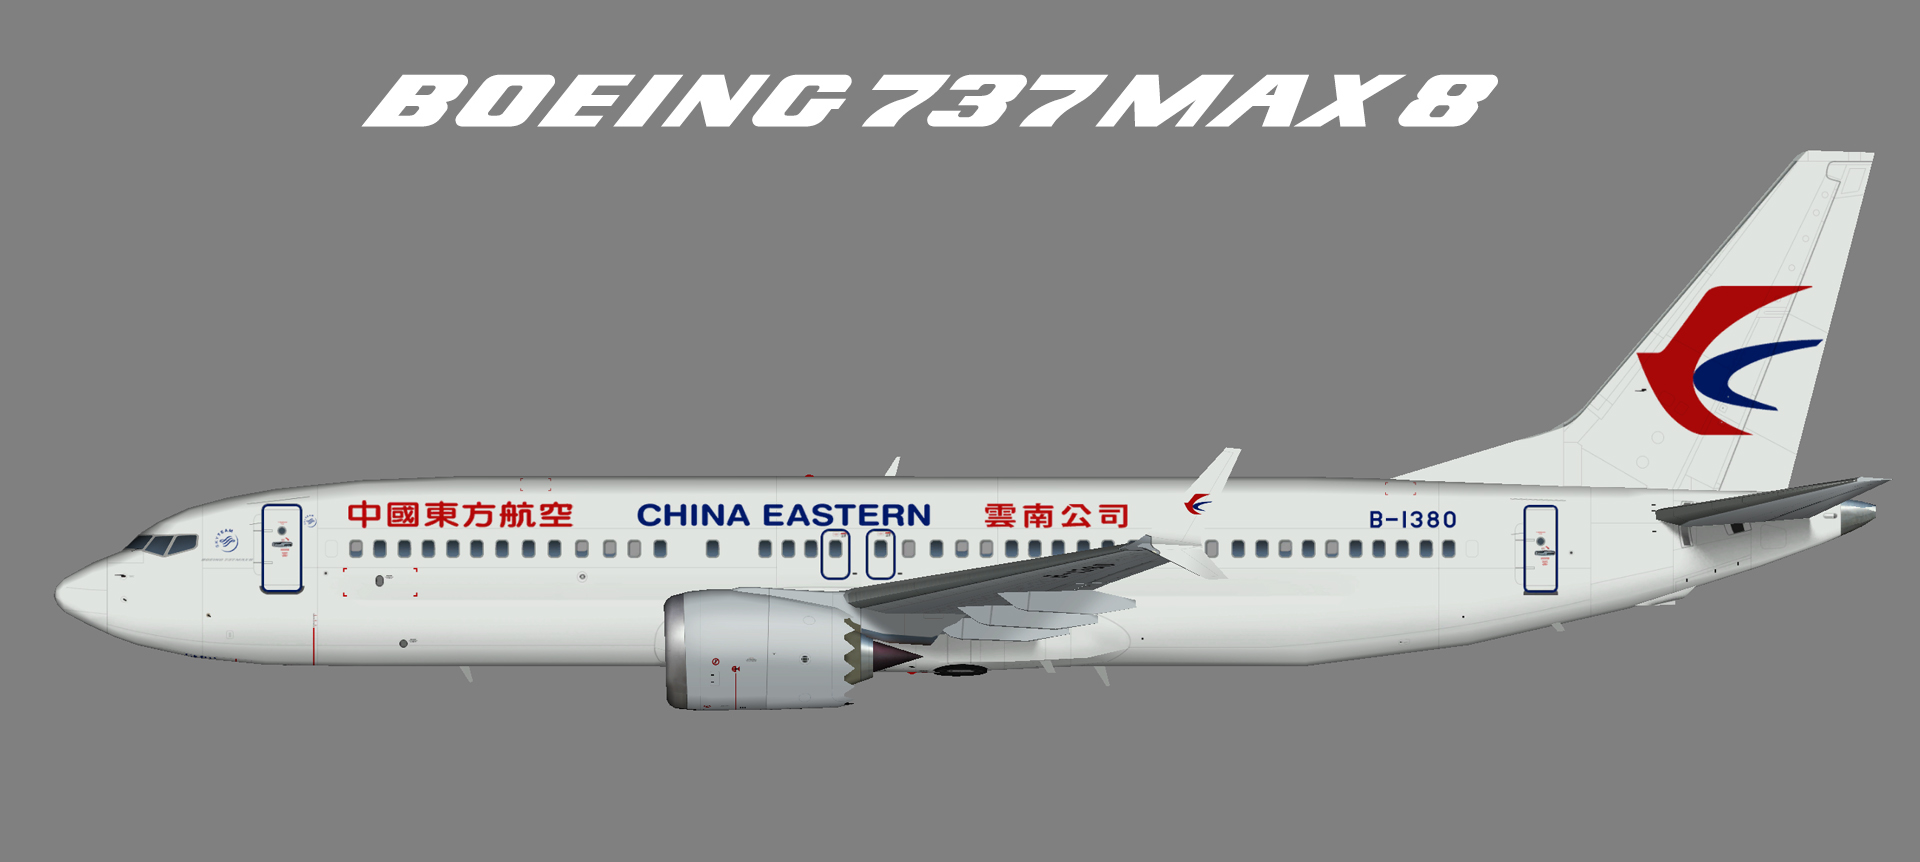 China Eastern Boeing 737 MAX 8